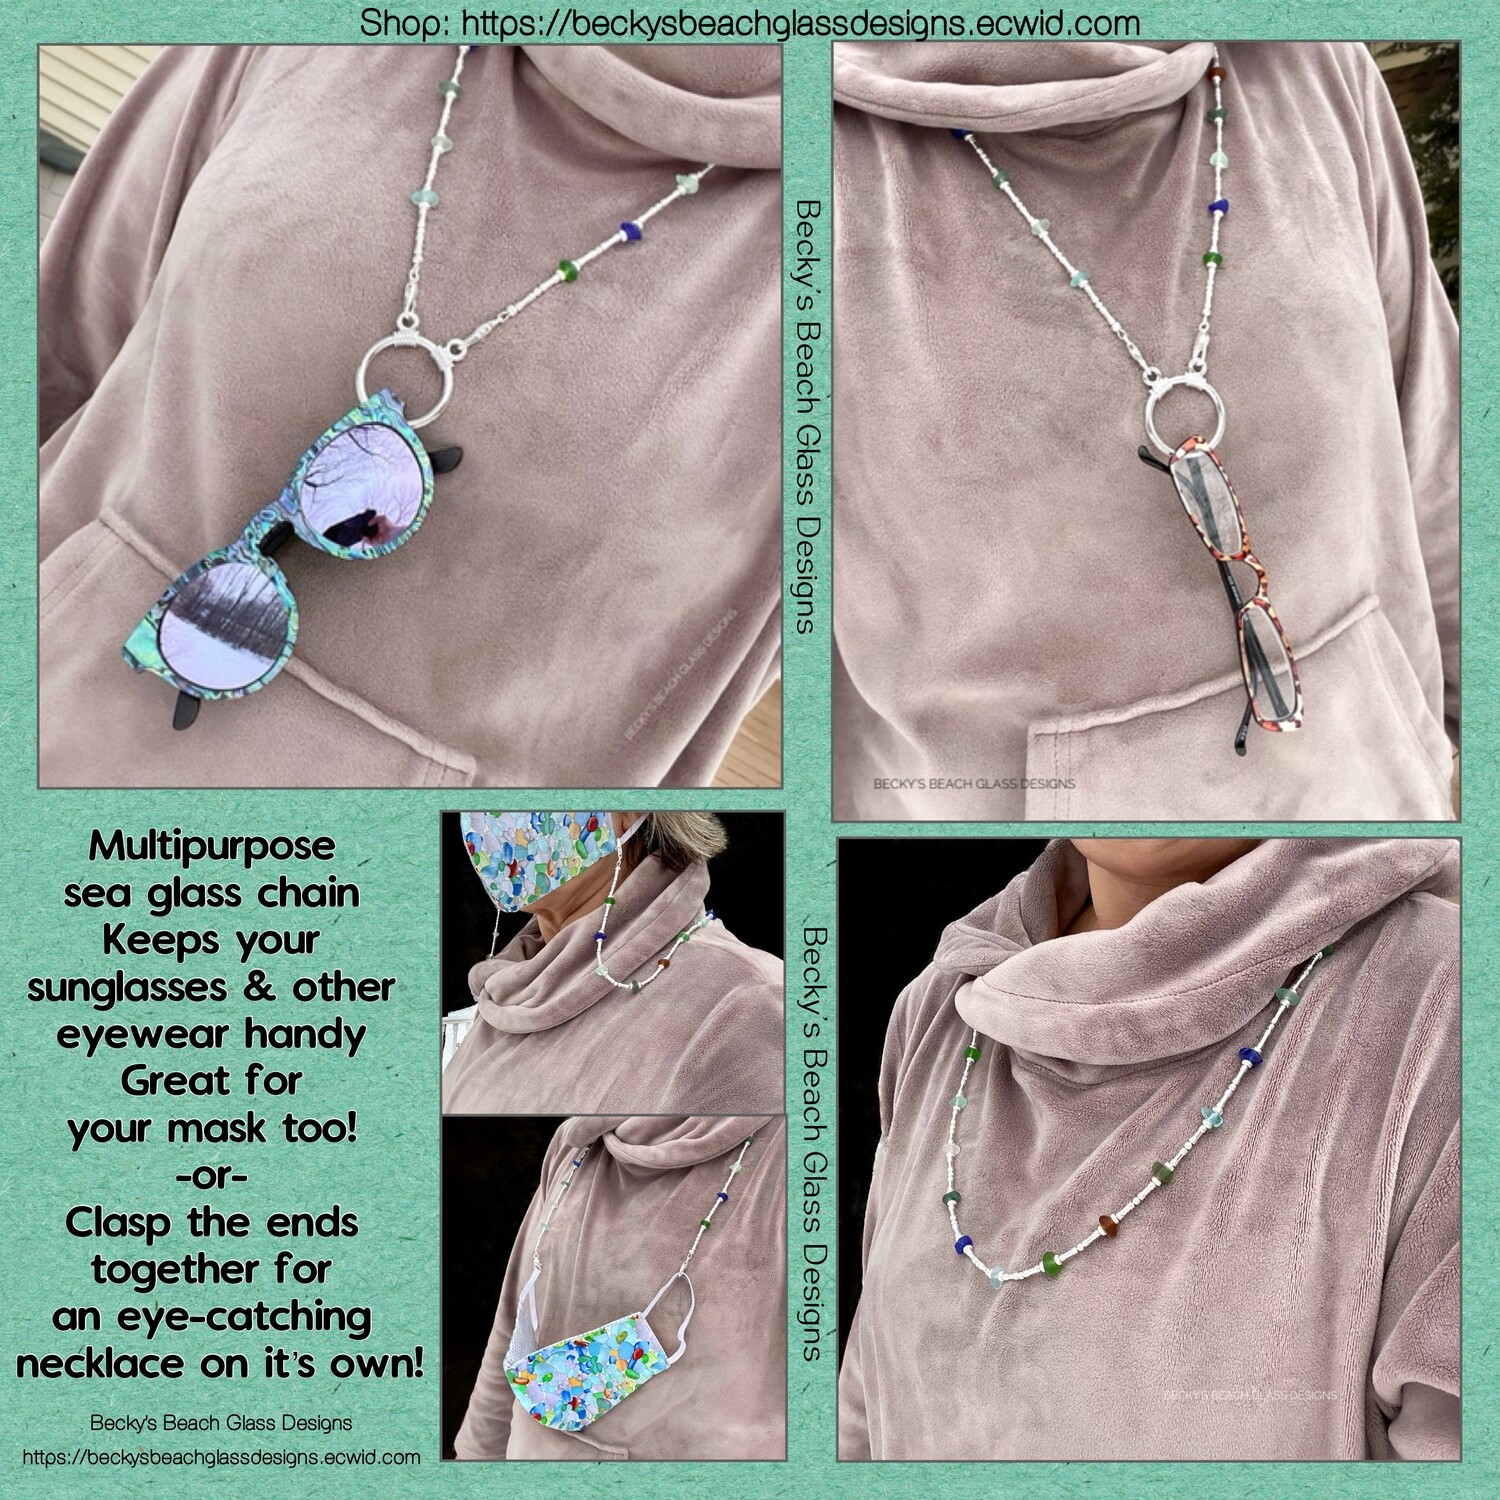 Versatile Multi-Purpose Sea Glass Chain